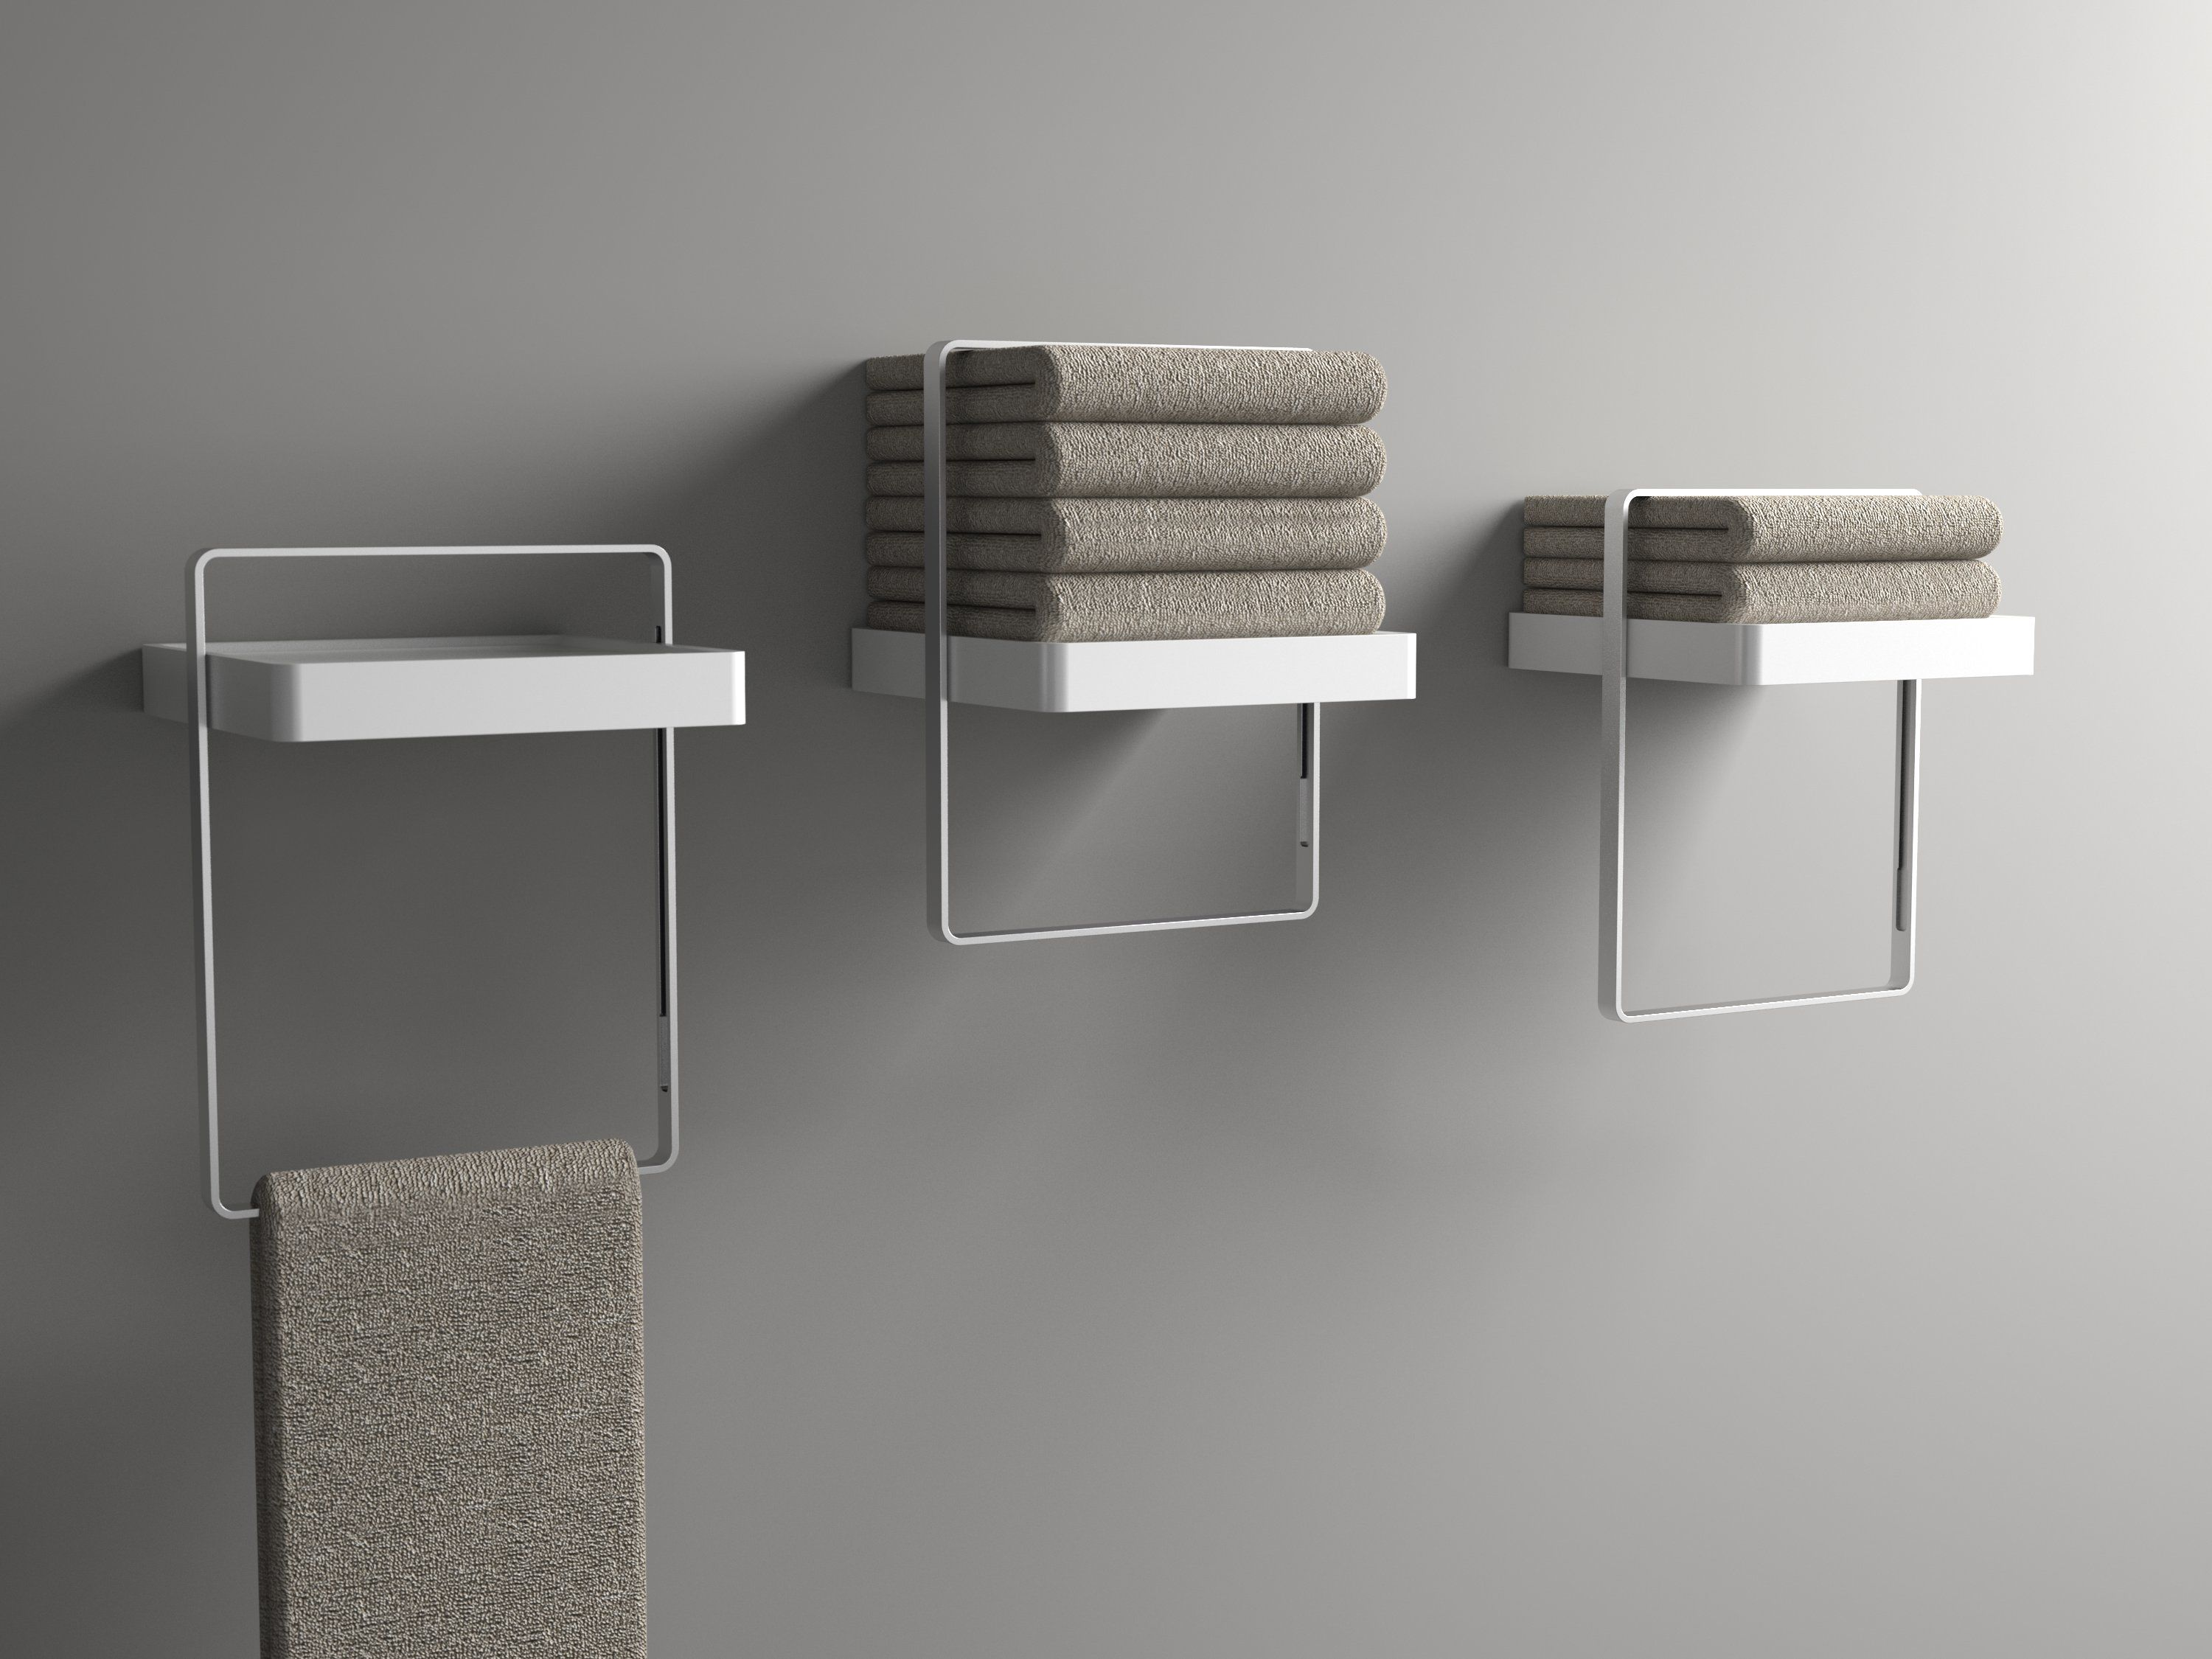 Badezimmer Accessoires Depot Towel Stands Towel Shelves Home Depot Bathroom Shelves For